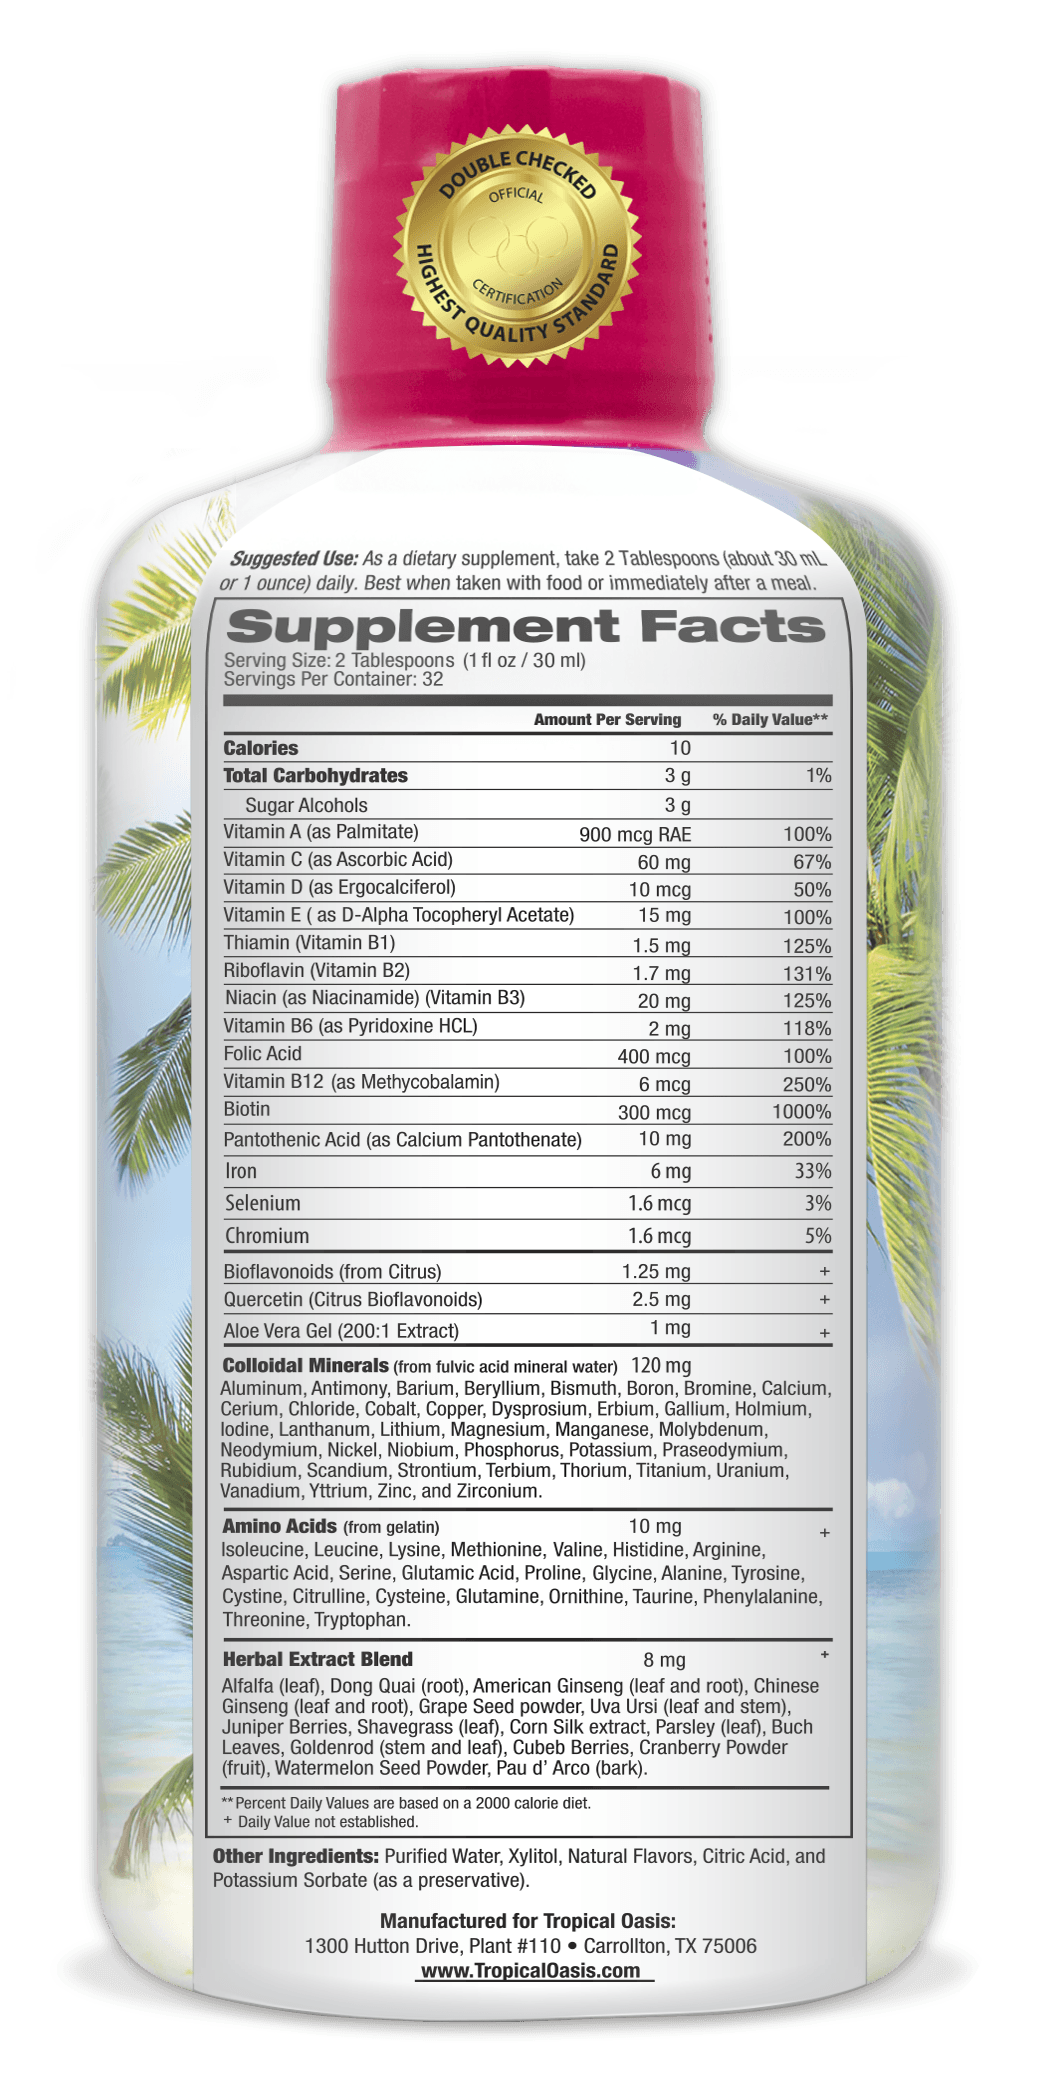 Women's Premium Liquid Multivitamin, Superfood, & Herbal Blend -- 32 fl oz, 32 serv.